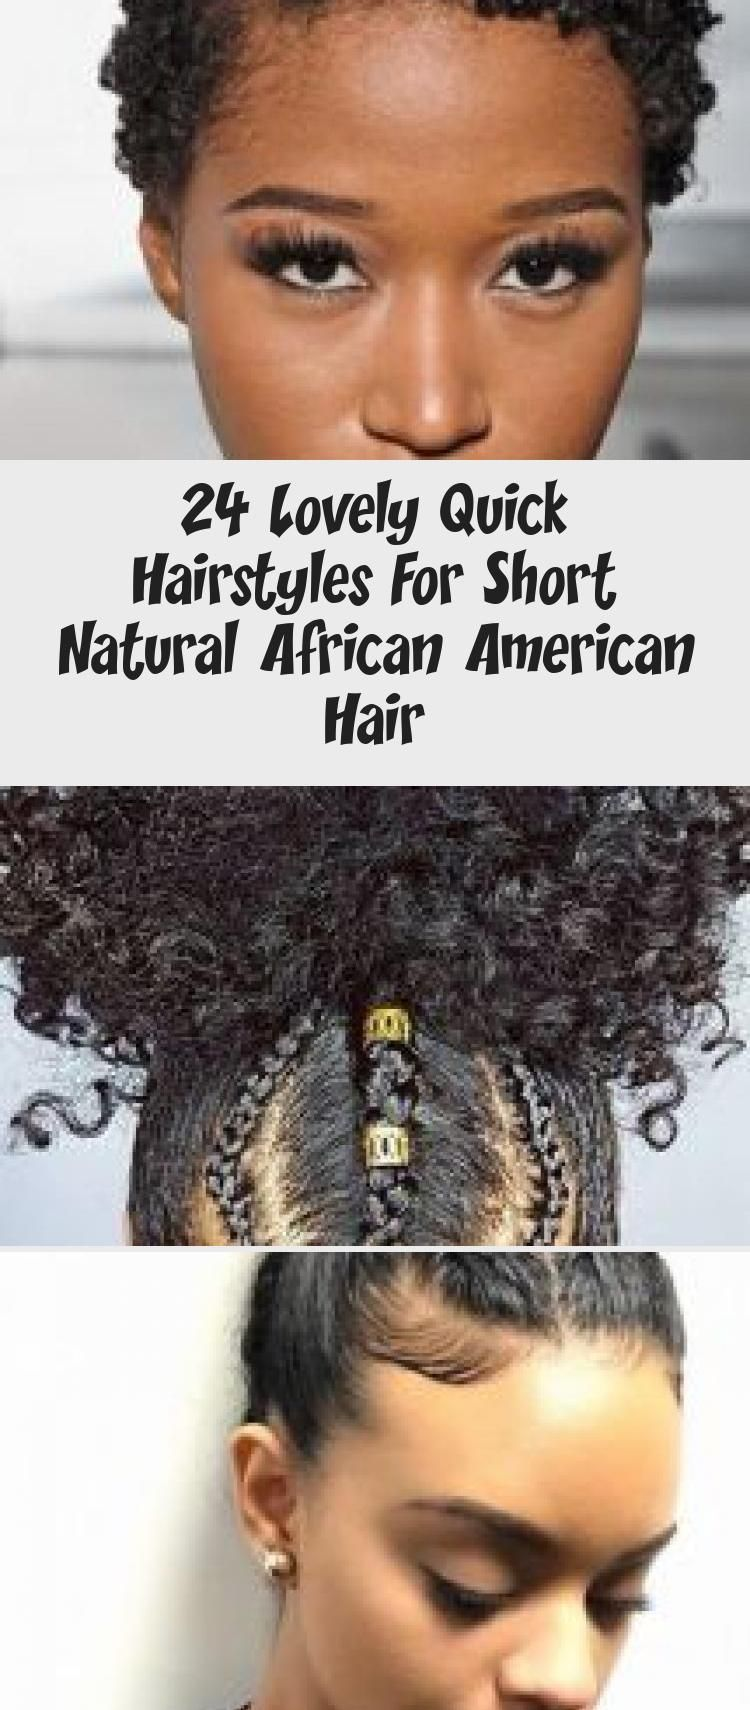 24 Lovely Quick Hairstyles For Short Natural African American Hair - Hairstyle   A2VIDS #africanamericanhair Quick Hairstyles for Short Natural African American Hair Luxury Super Hair Growth Oil Diy Recipe #quickhairstylesOnTheGo #quickhairstylesWithBangs #quickhairstylesForGym #quickhairstylesScrunchie #quickhairstylesUpdos